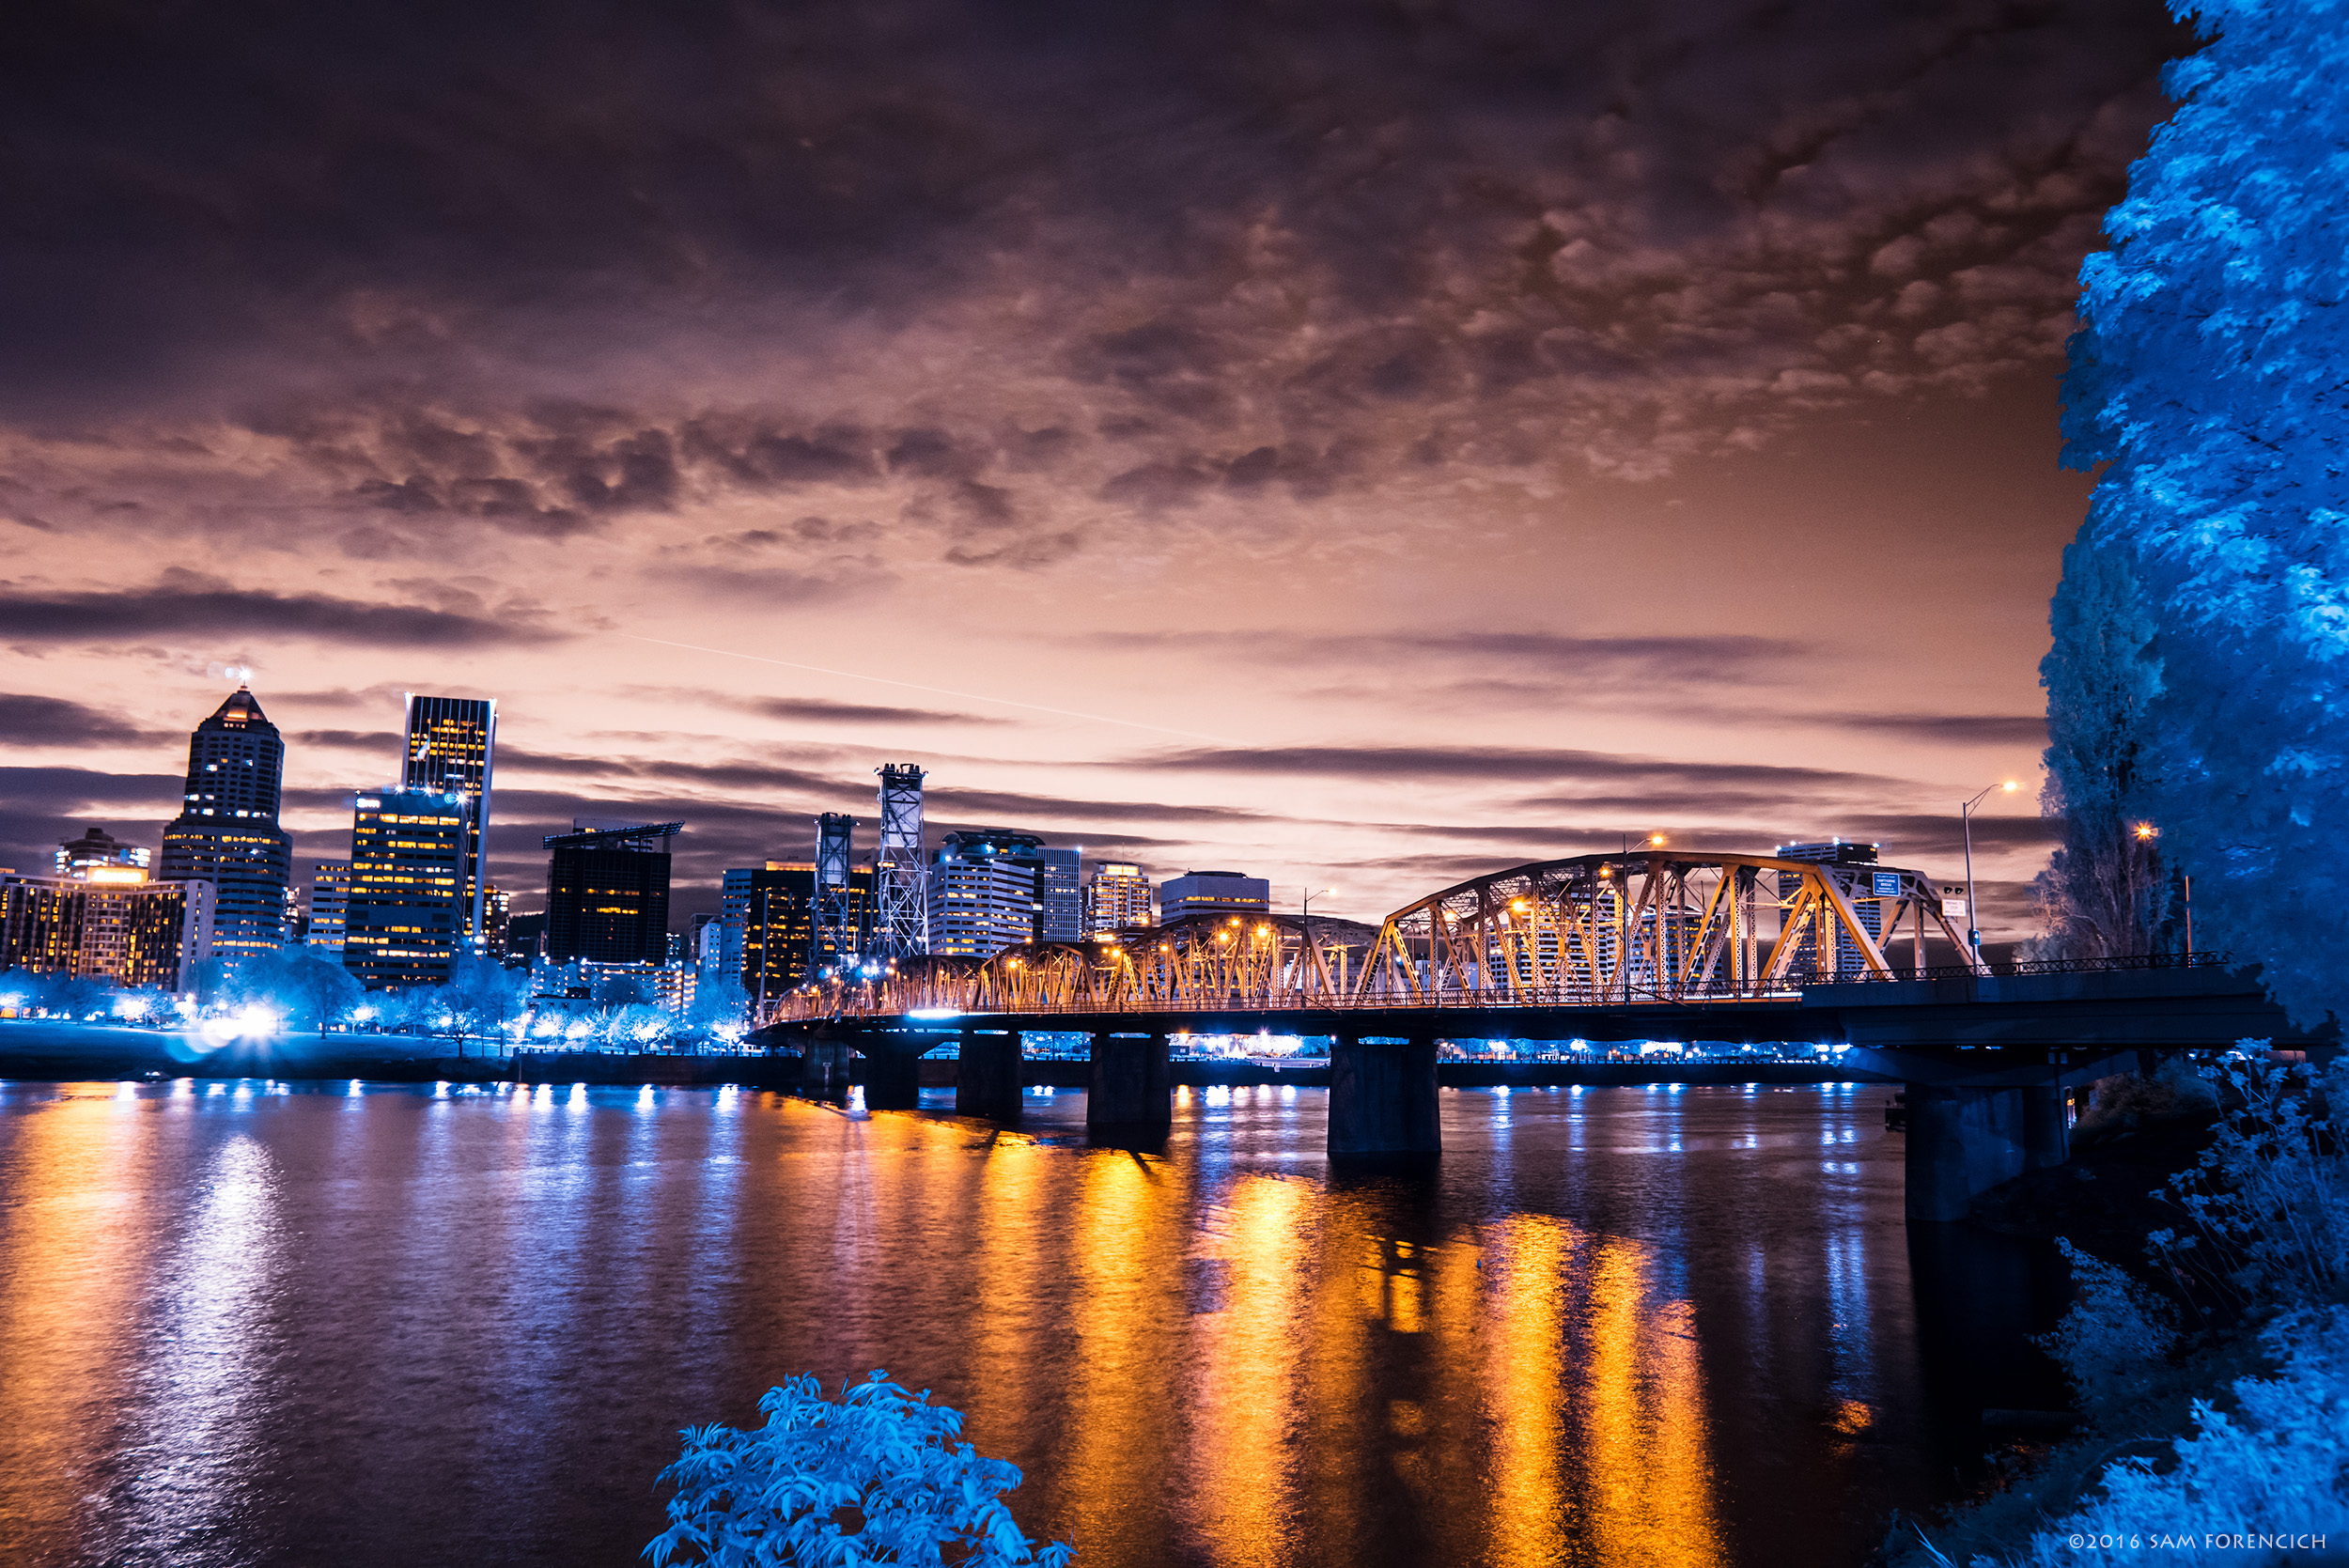 One of 11 bridges spanning the Willamette River in Portland, Oregon, the Hawthorne Bridge is a major crossing into downtown Portland. Still image from Invisible Oregon time-lapse sequence. IR converted Nikon D750. © 2016 Sam Forencich